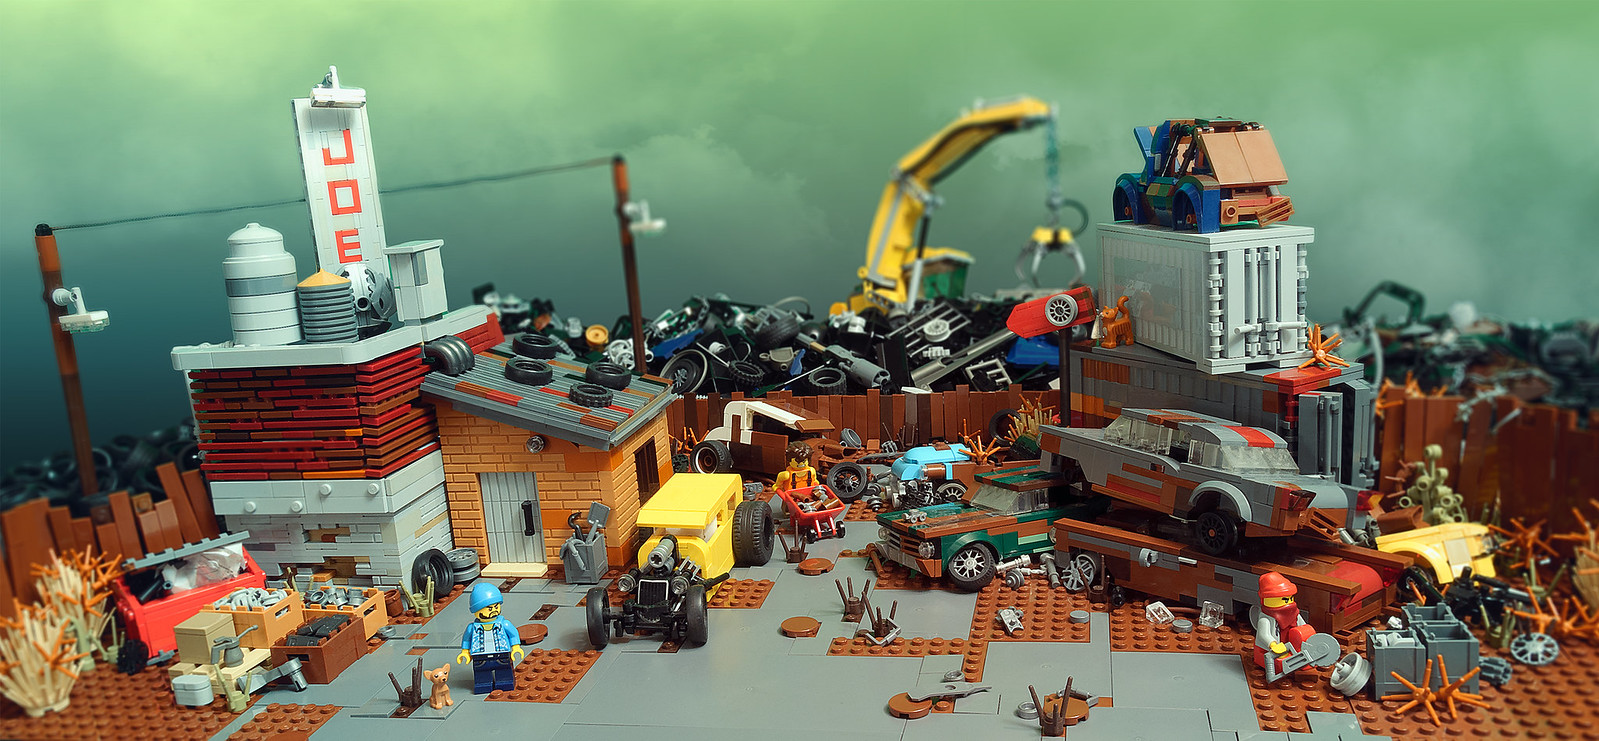 Joe's scrapyard